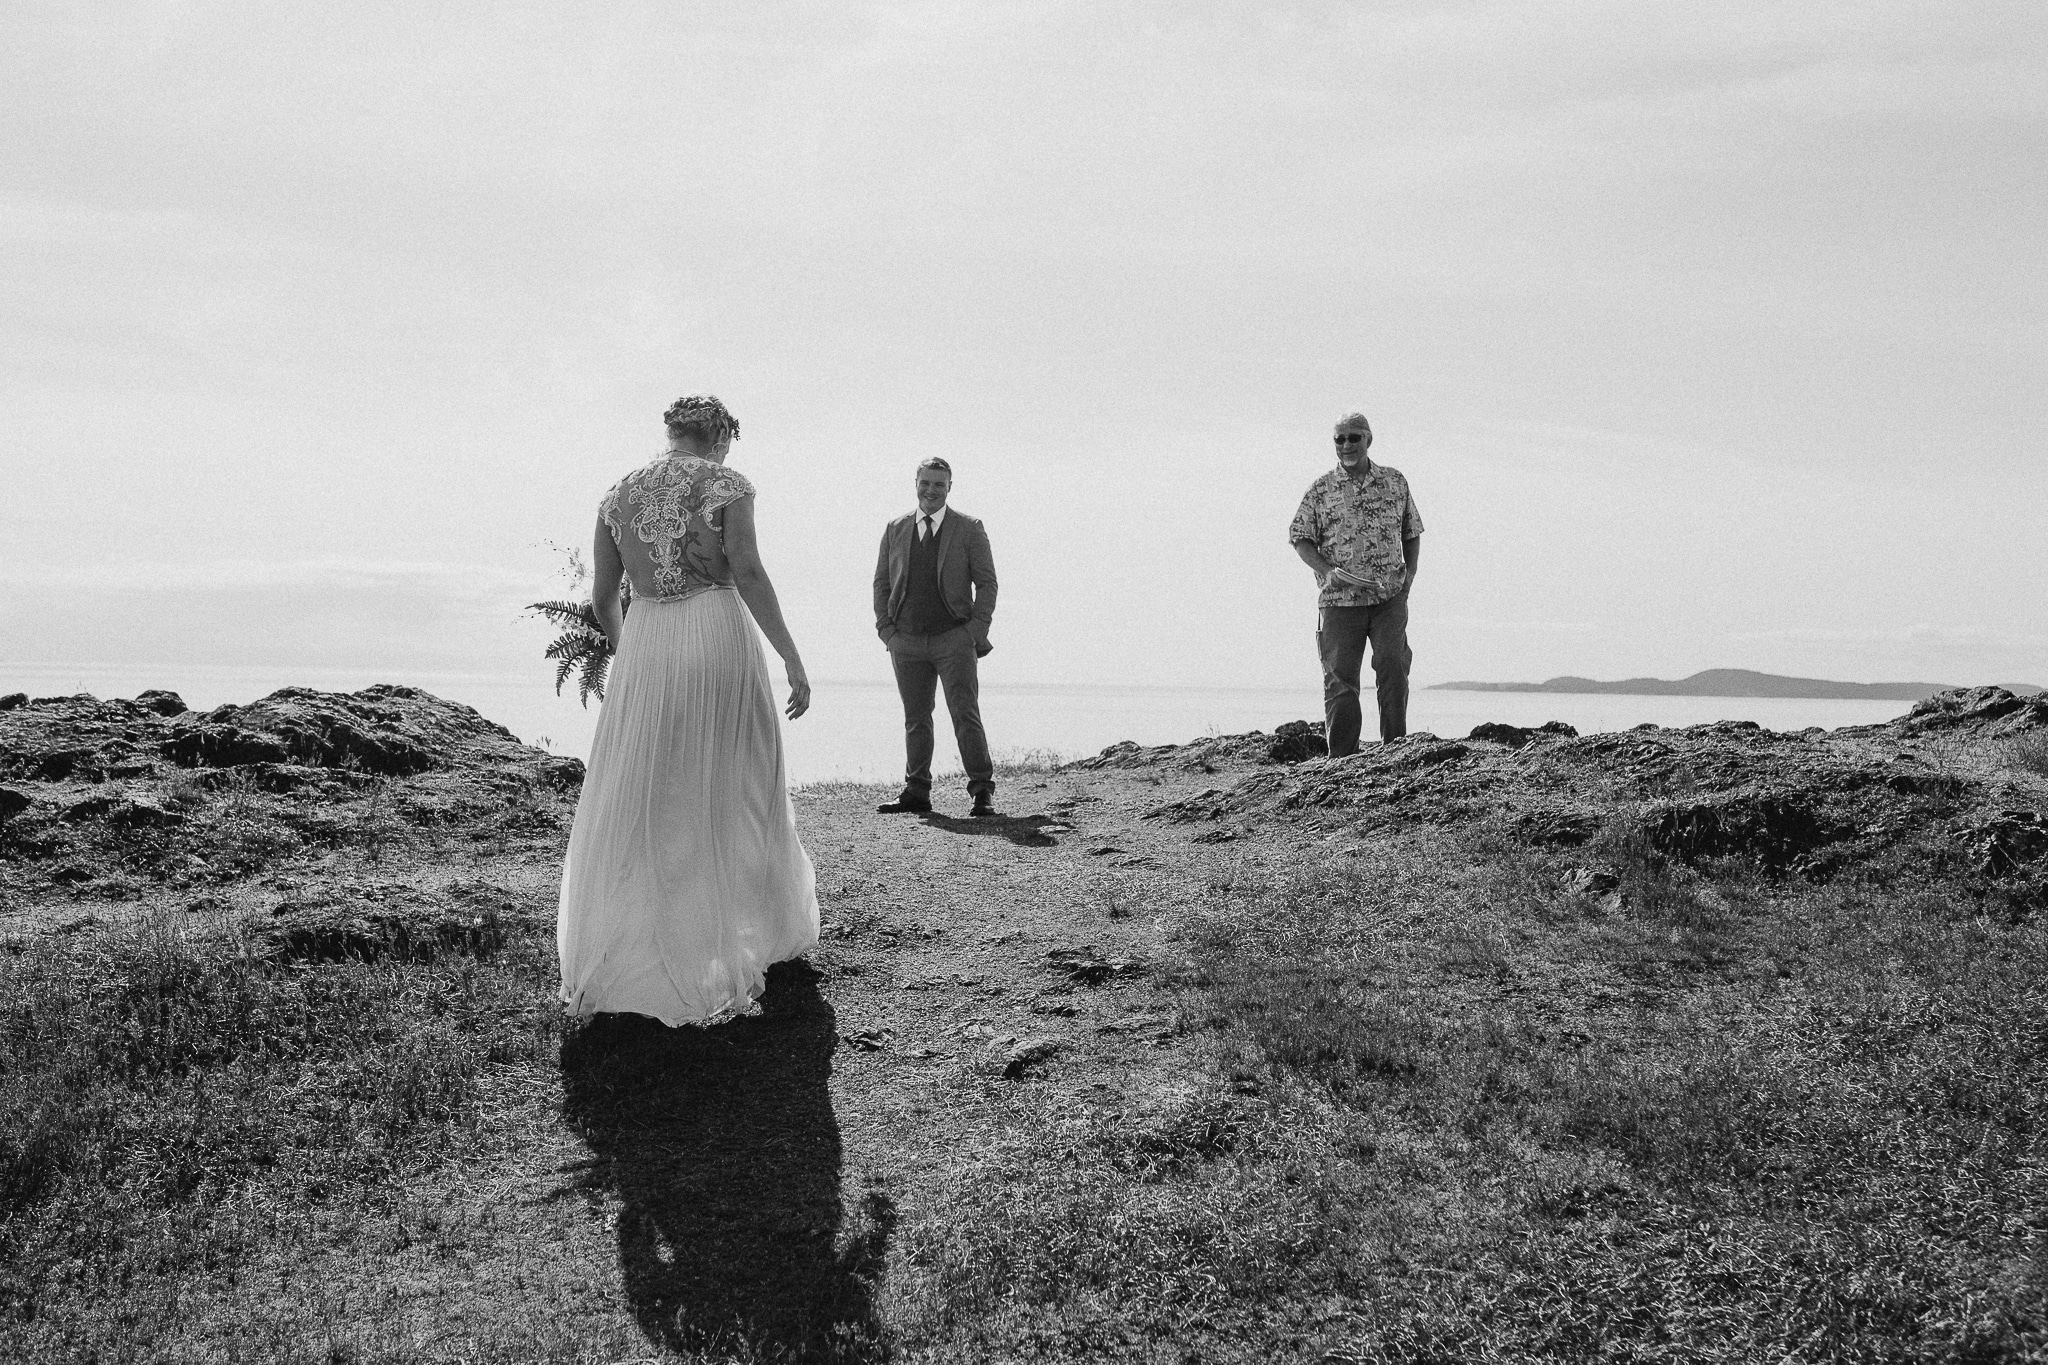 Whidbey Island Elopement Photos, Deception Pass Elopement Photos, Washington Elopement Photographer, Rosario Beach elopement photos, Washington wedding photographer, Best photographers in Washington, Best Washington elopement photographers, Best Washington Wedding photographers, adventurous Elopement session, Whidbey Island Deception Pass, adventure elopement photographer, hipster couple elopement photos